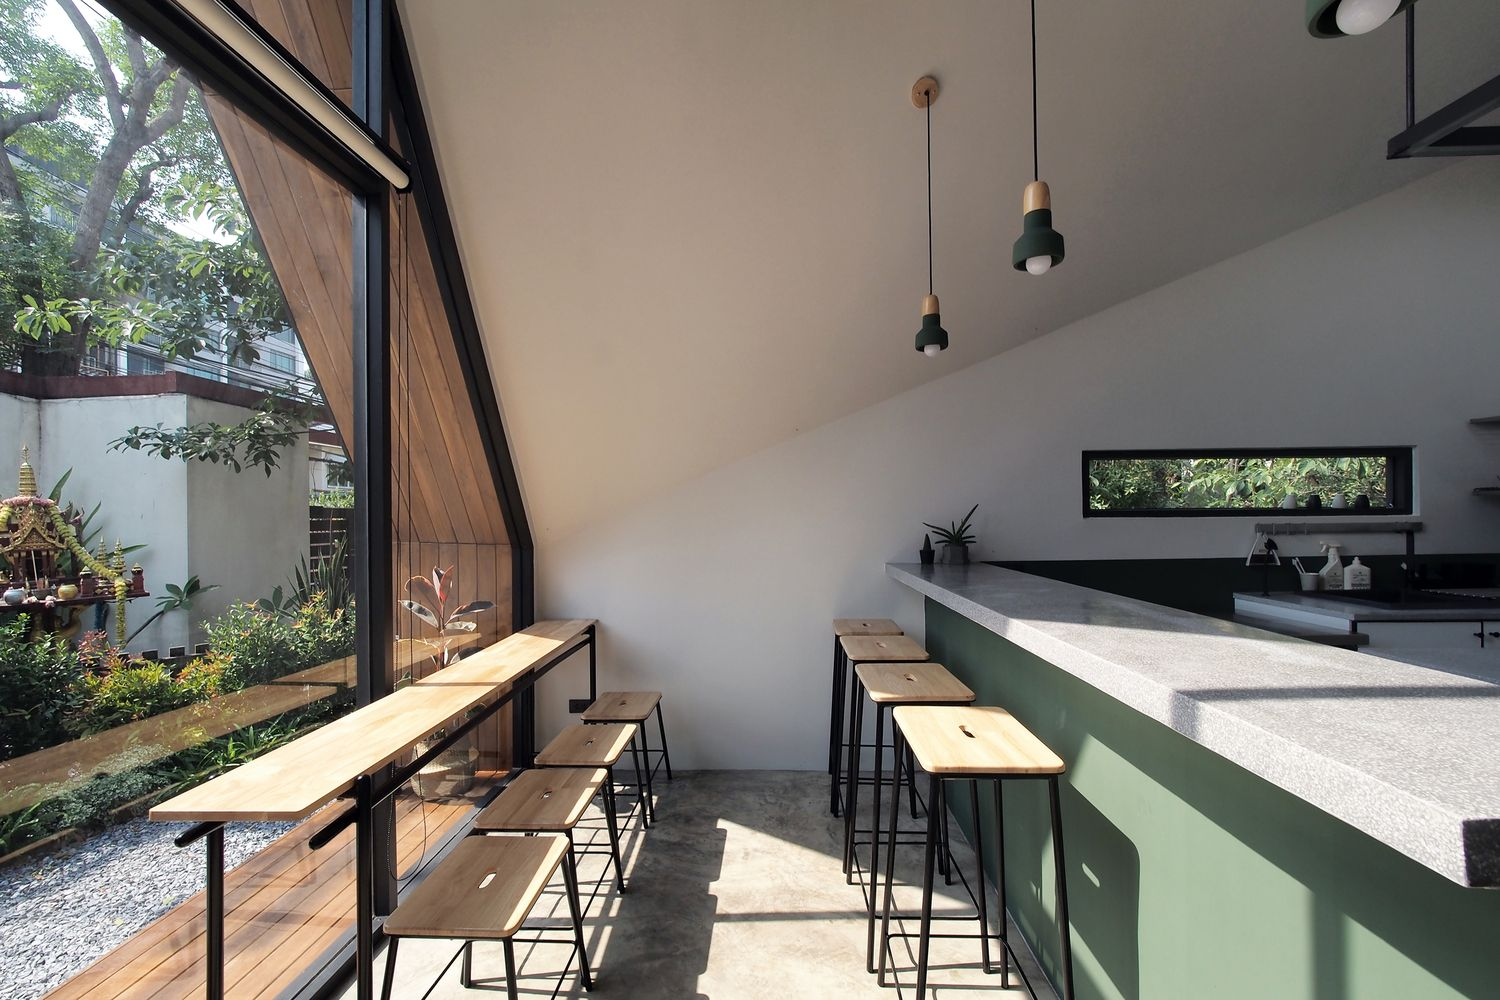 Gallery of Giant Bakes Cafe / ASWA 3 in 2020 Cafe